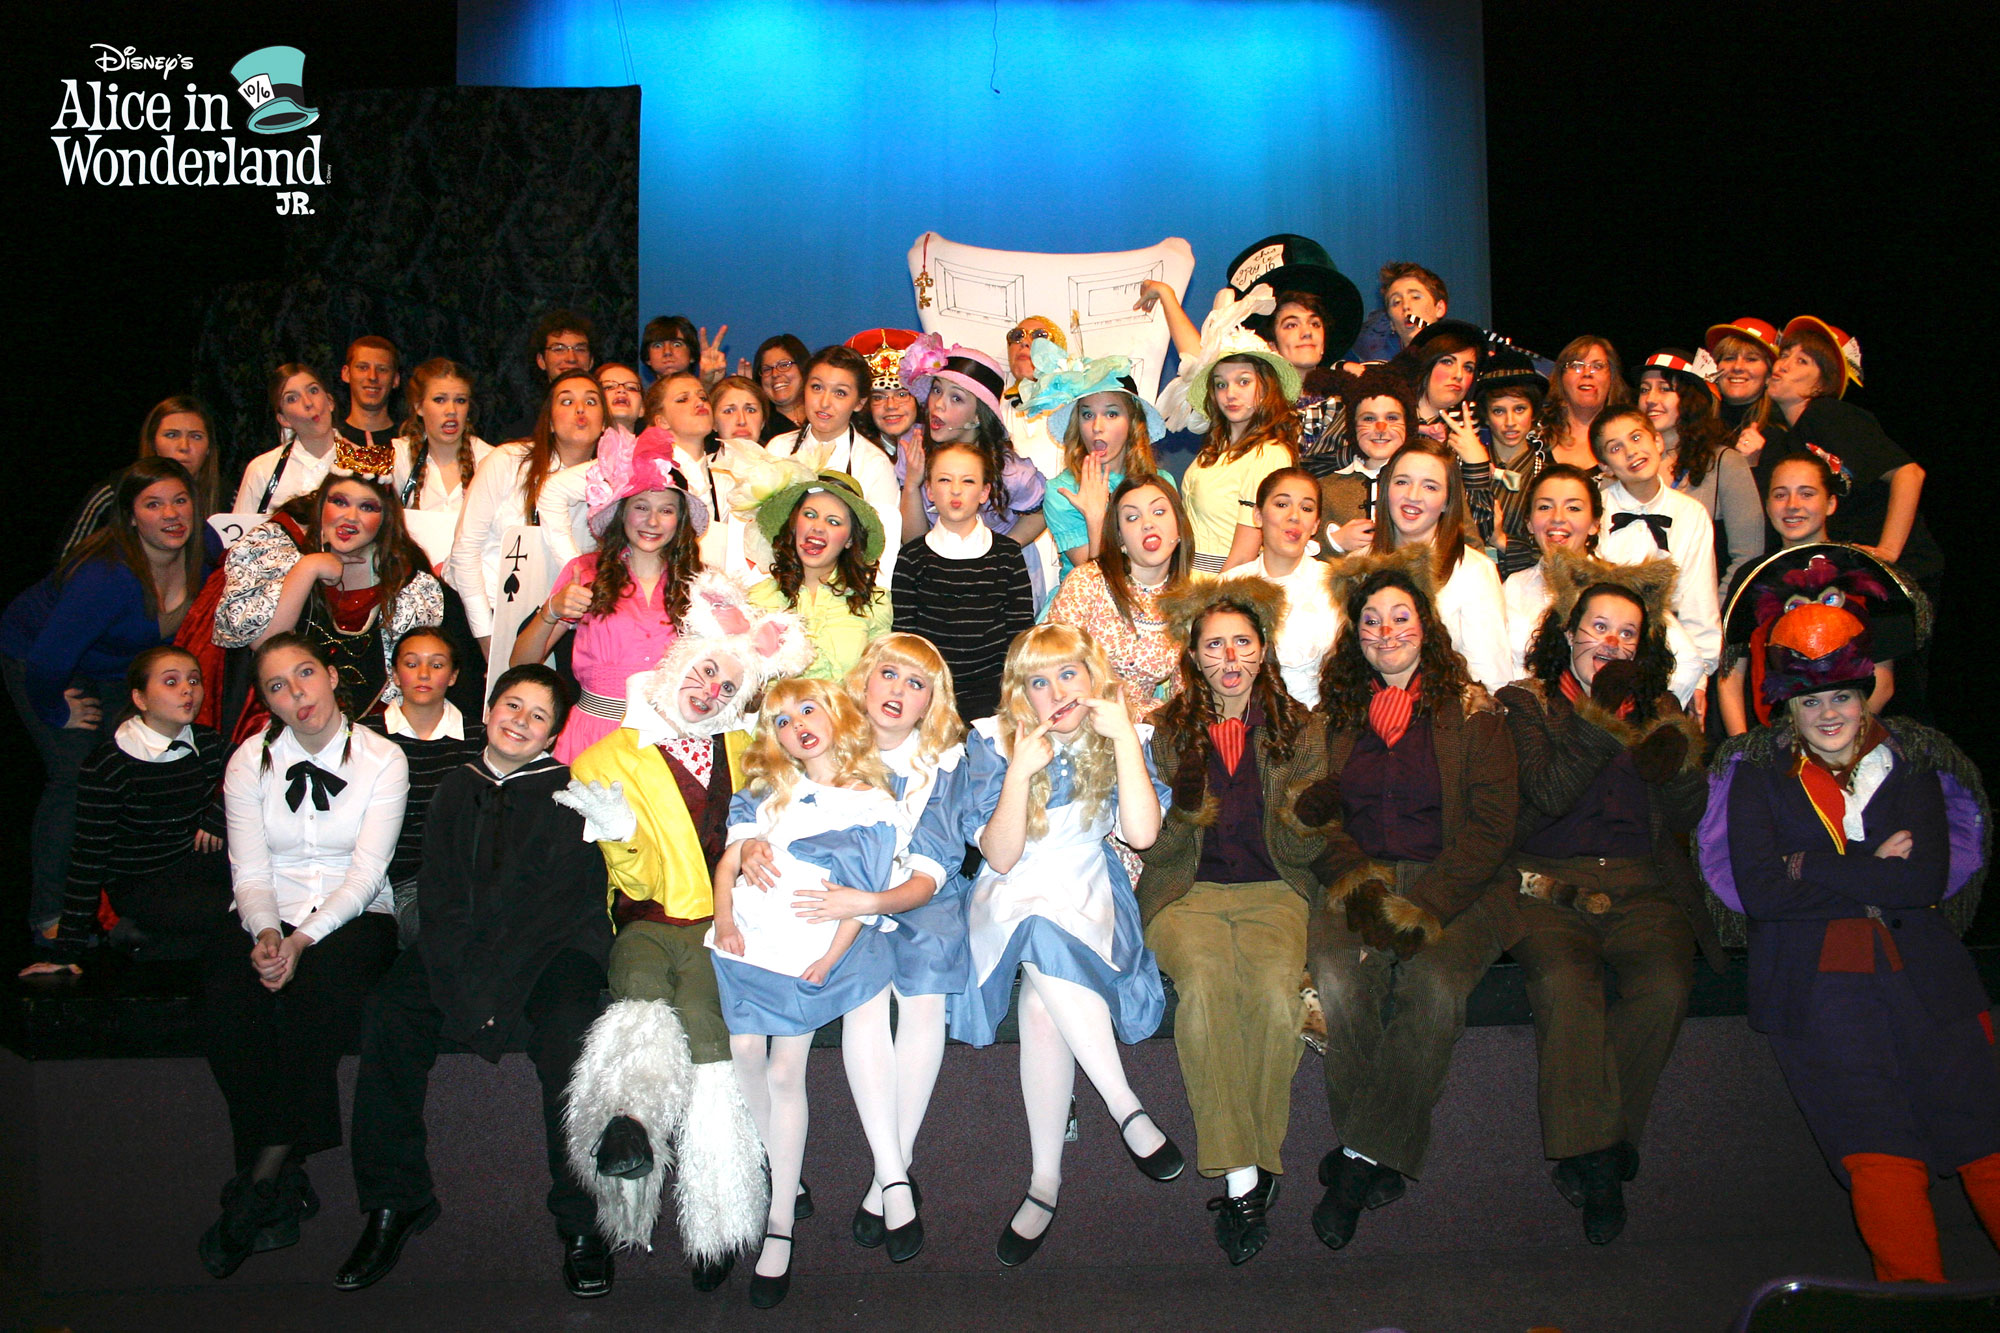 Alice-in-wonderland-cast-and-crew